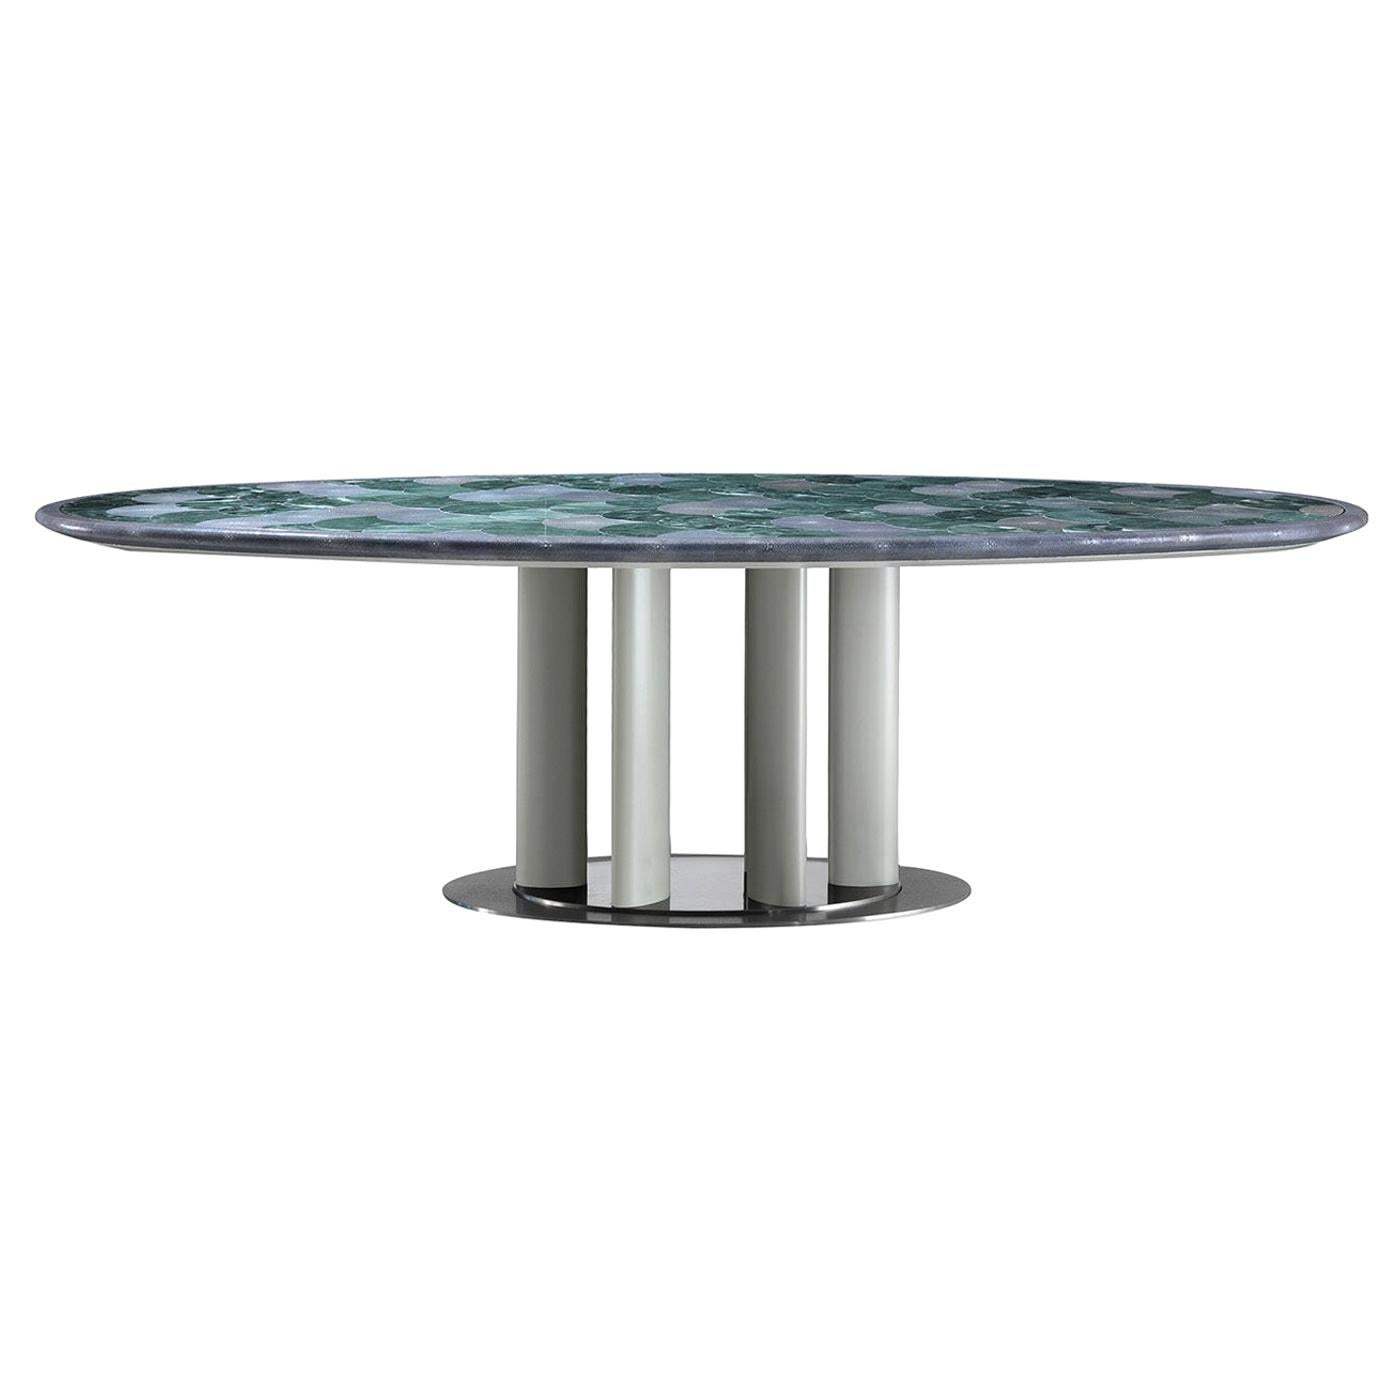 Marble and Leather Oval Dining Table by Simone Ciarmoli e Miguel Queda